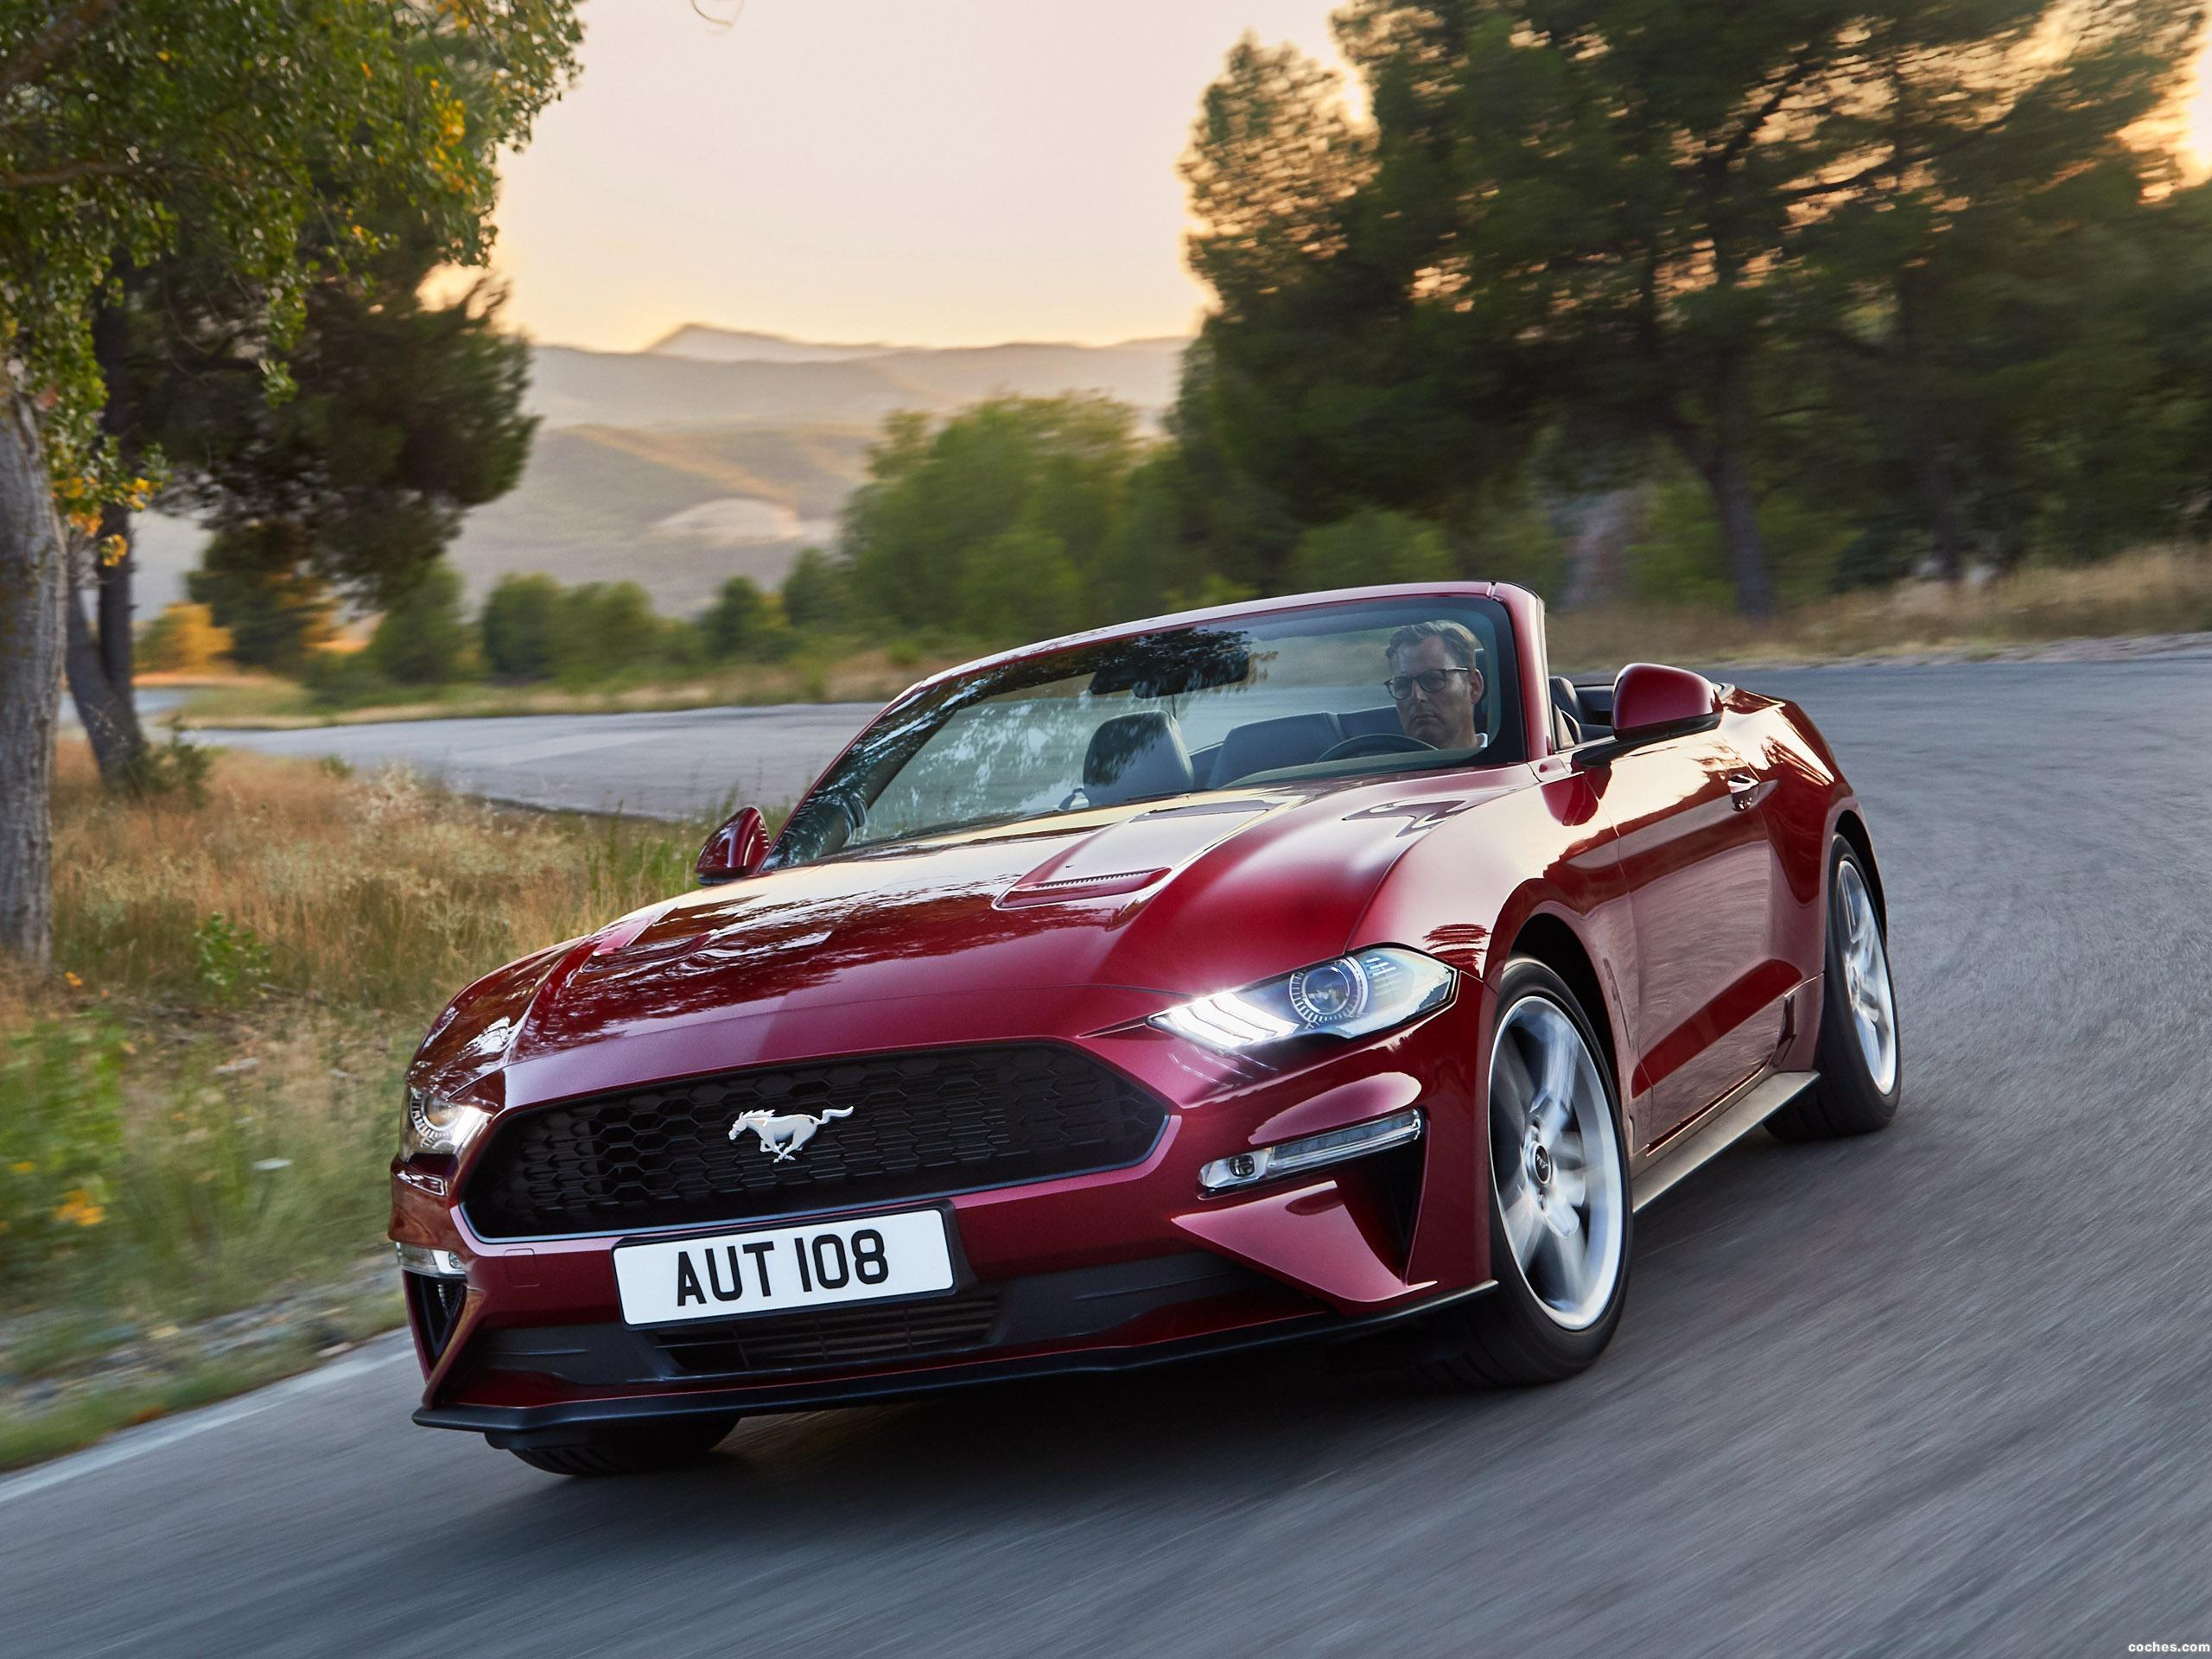 Foto 2 de Ford Mustang Ecoboost Convertible 2017